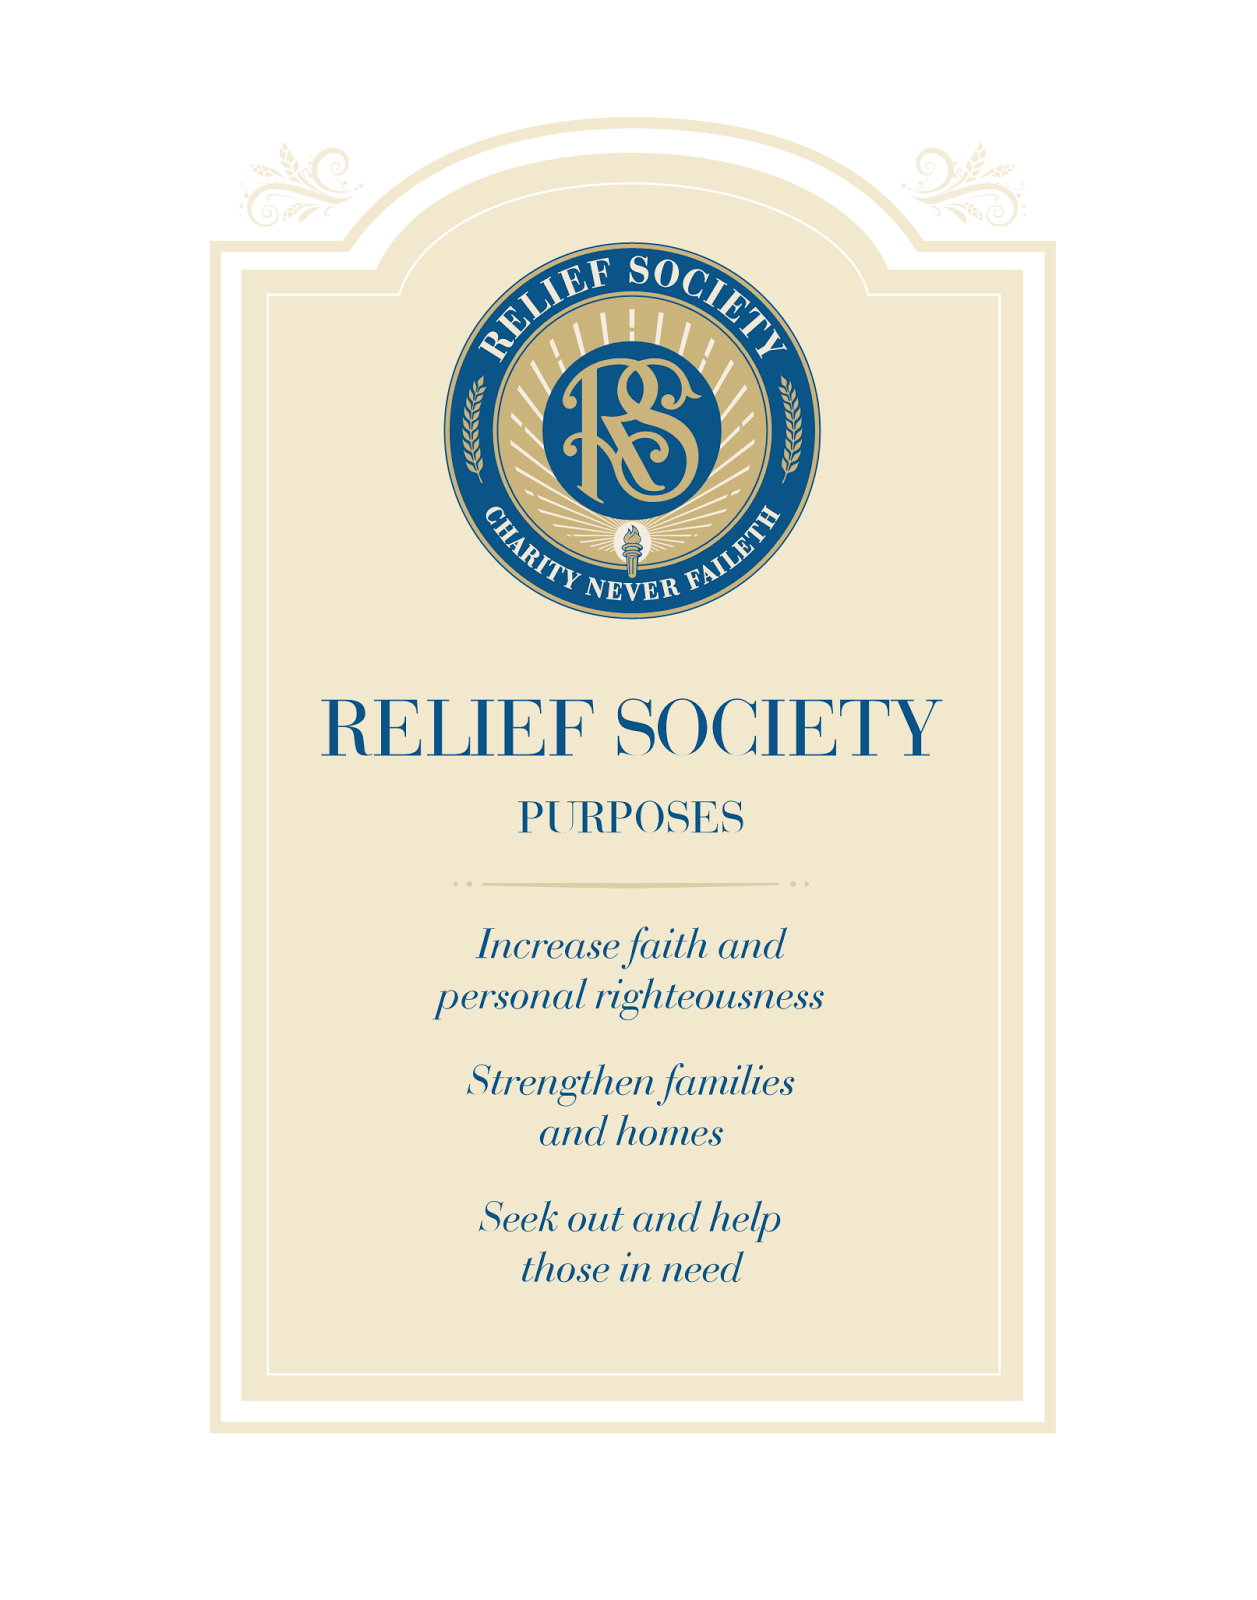 Didi @ Relief Society: New Relief Society bookmark and poster